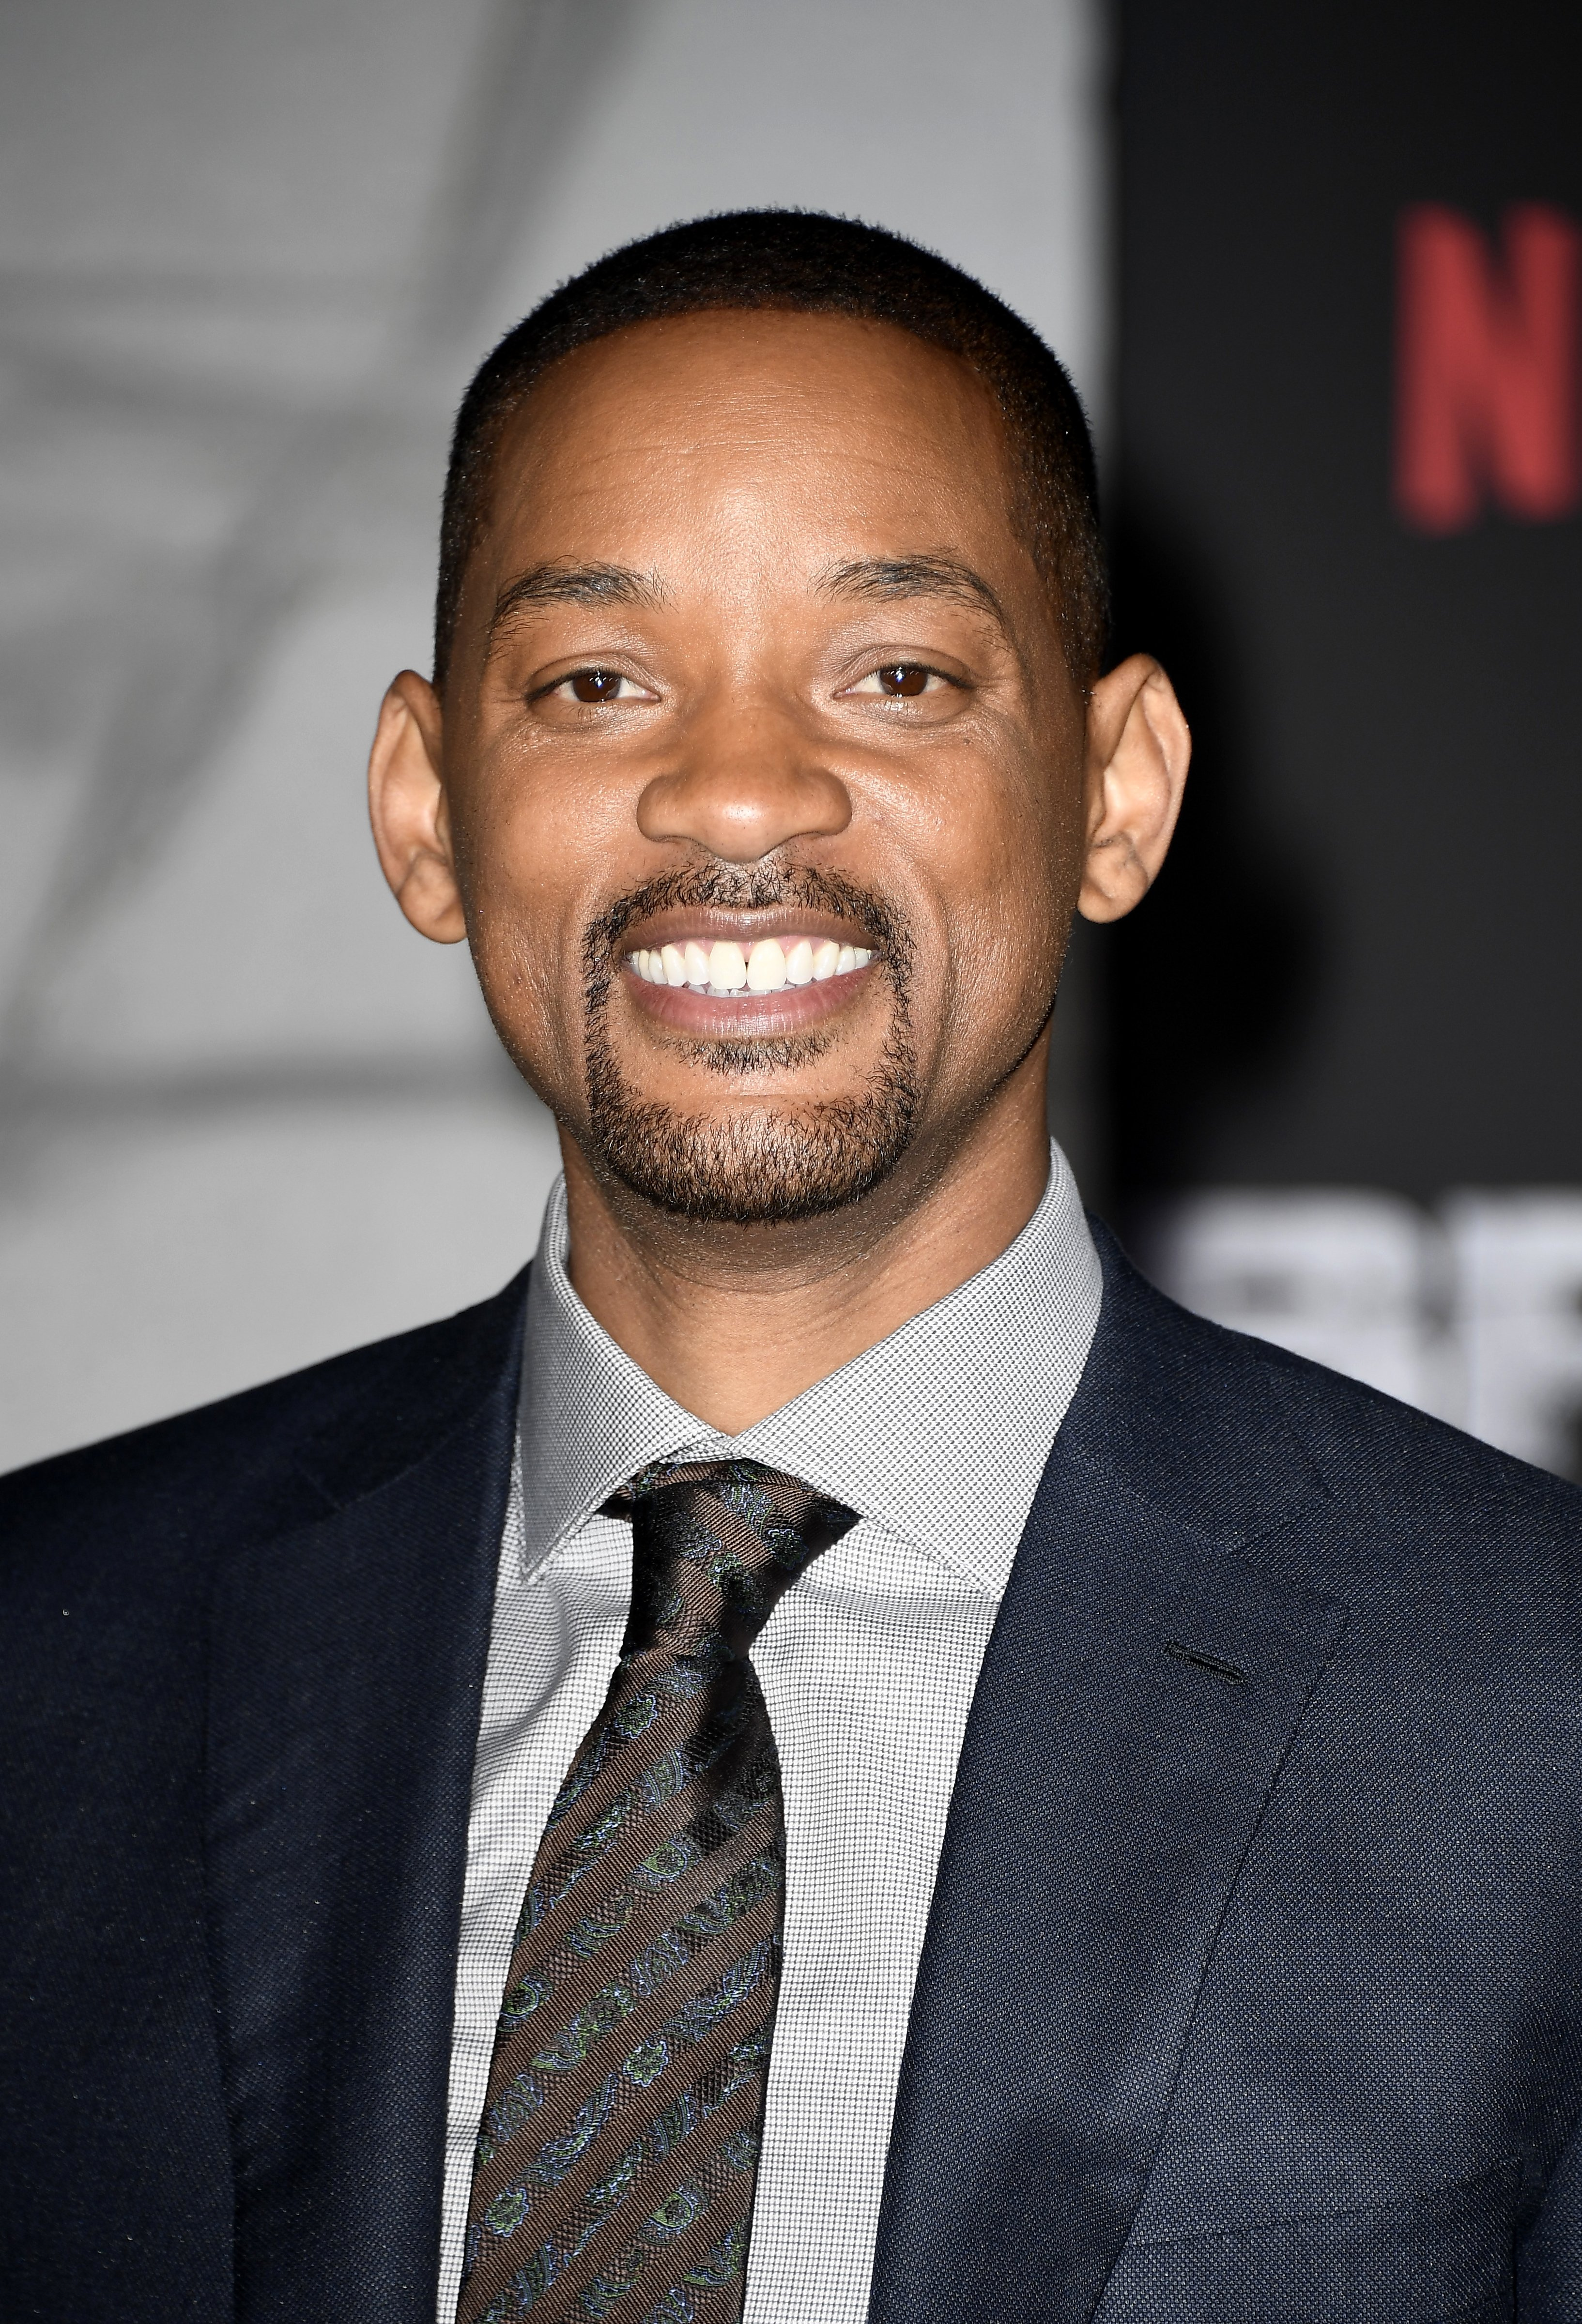 """Will Smith at the Premiere Of """"Bright"""" in Westwood, California on Dec. 13, 2017 